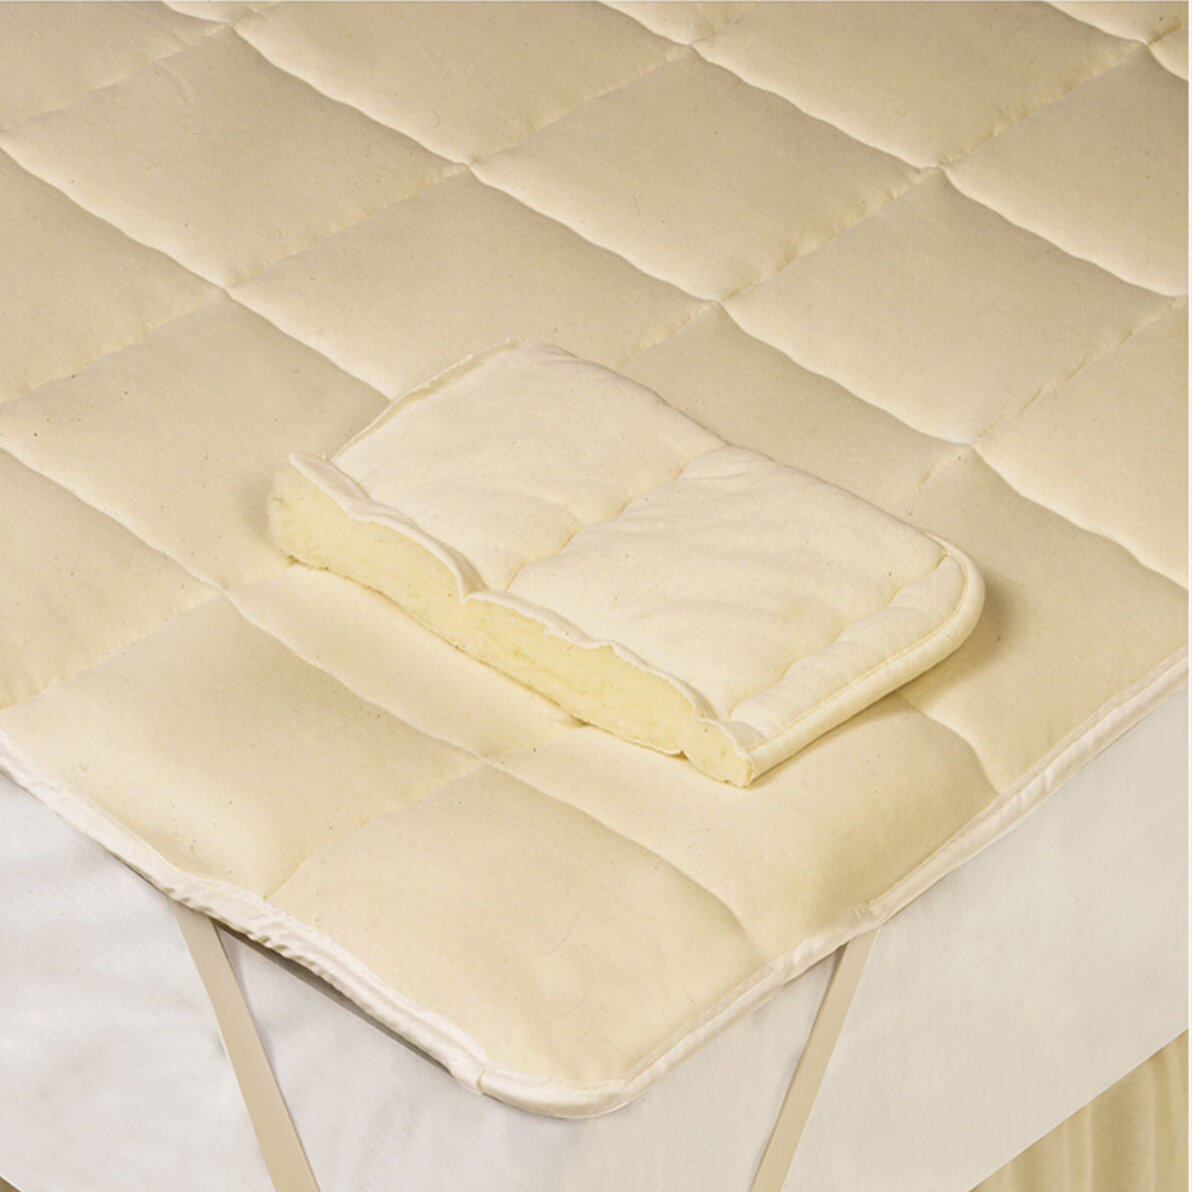 Arsuite Sussex Wool Mattress Pad Reviews Wayfair